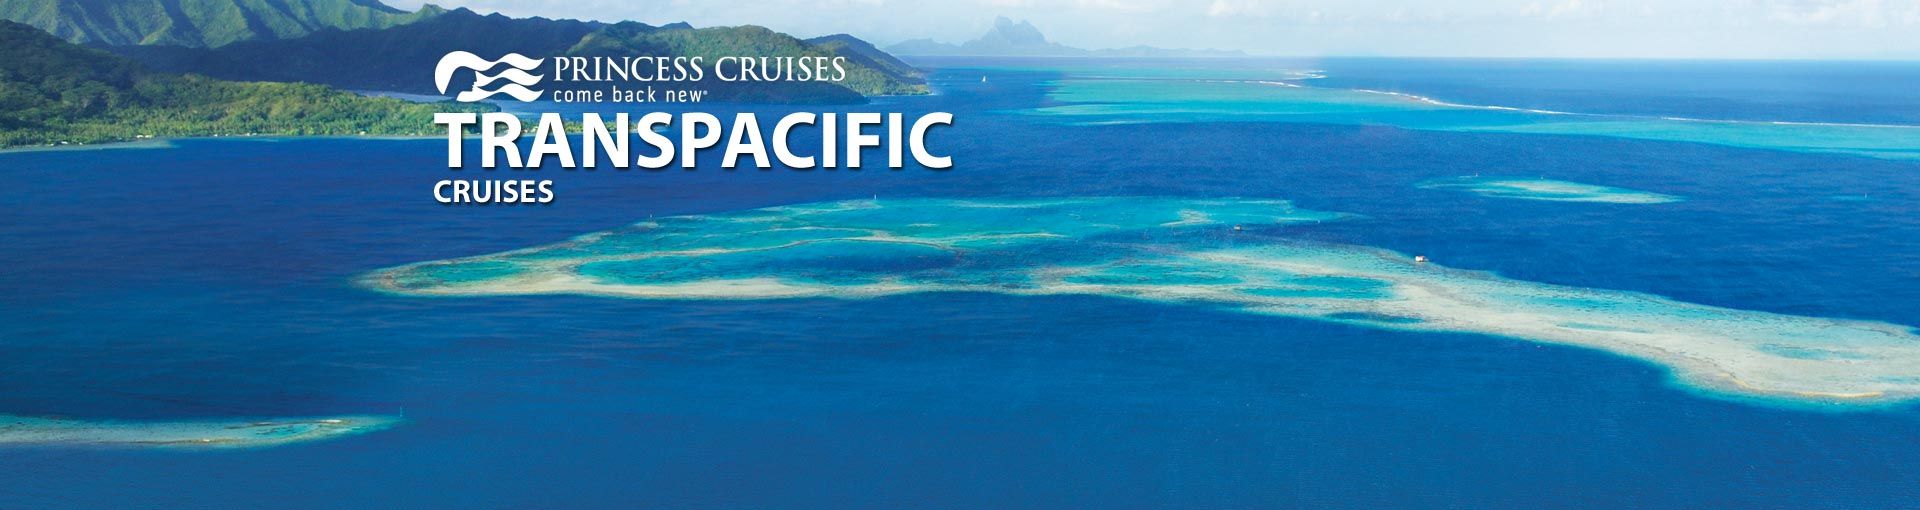 Princess Cruises Transpacific Cruises